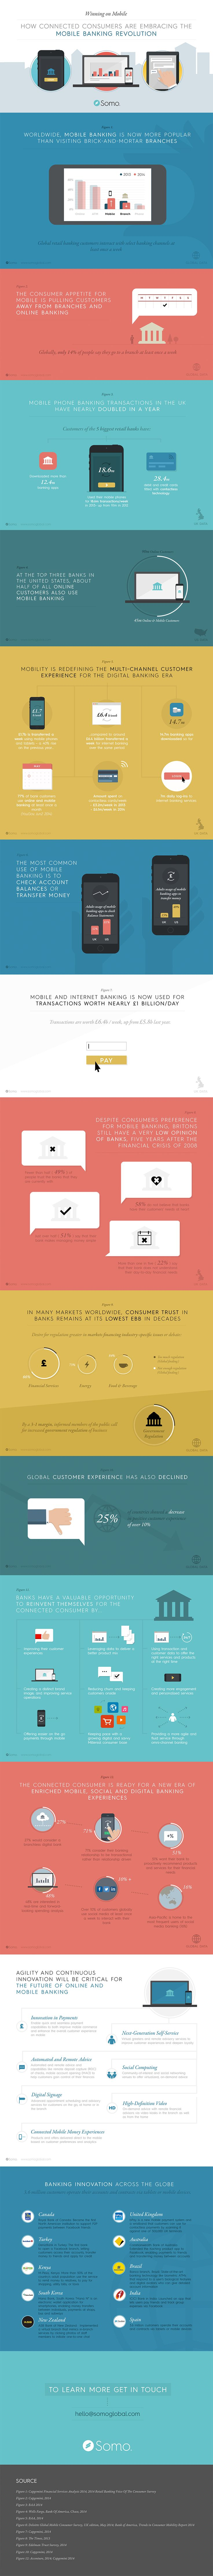 How consumers are embracing the #mobile #mbanking revolution | #infographic | #Econsultancy